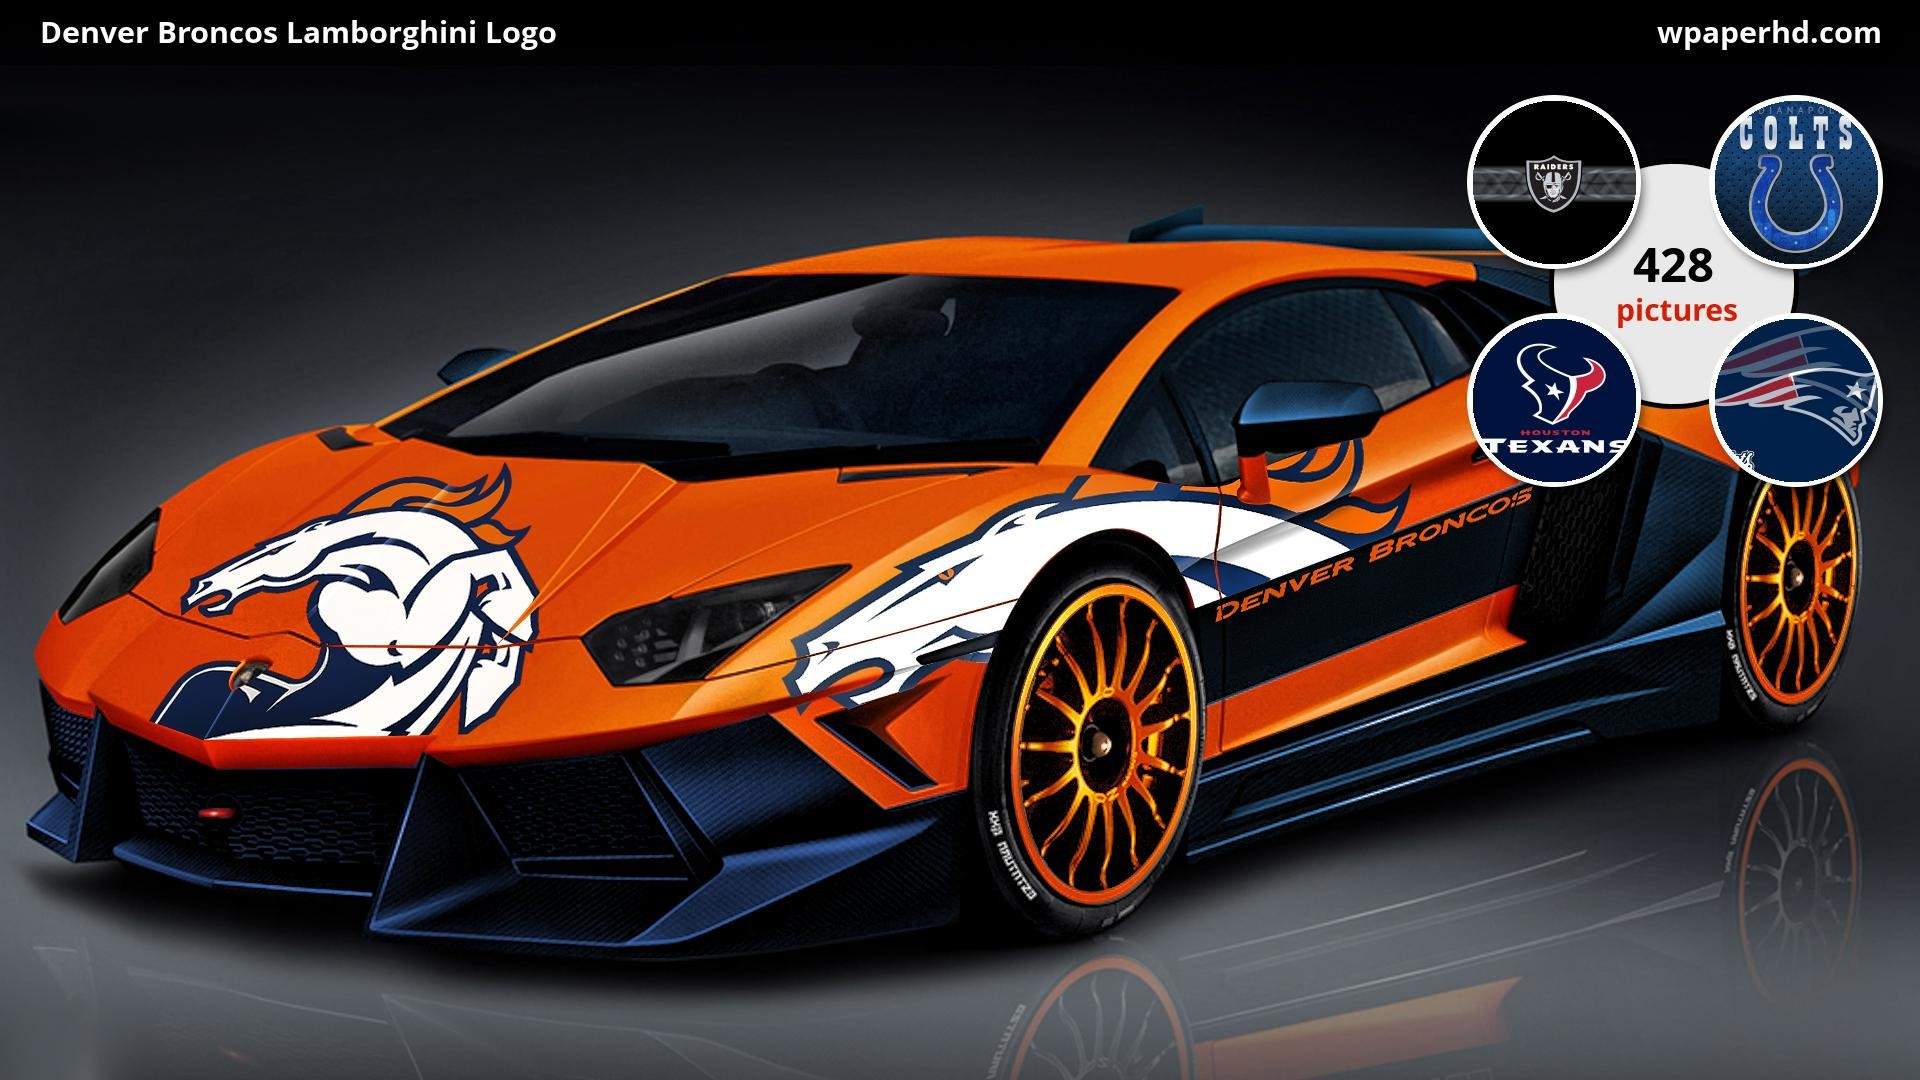 Res: 1920x1080, You are on page with Denver Broncos Lamborghini Logo wallpaper, where you  can download this picture in Original size and ...